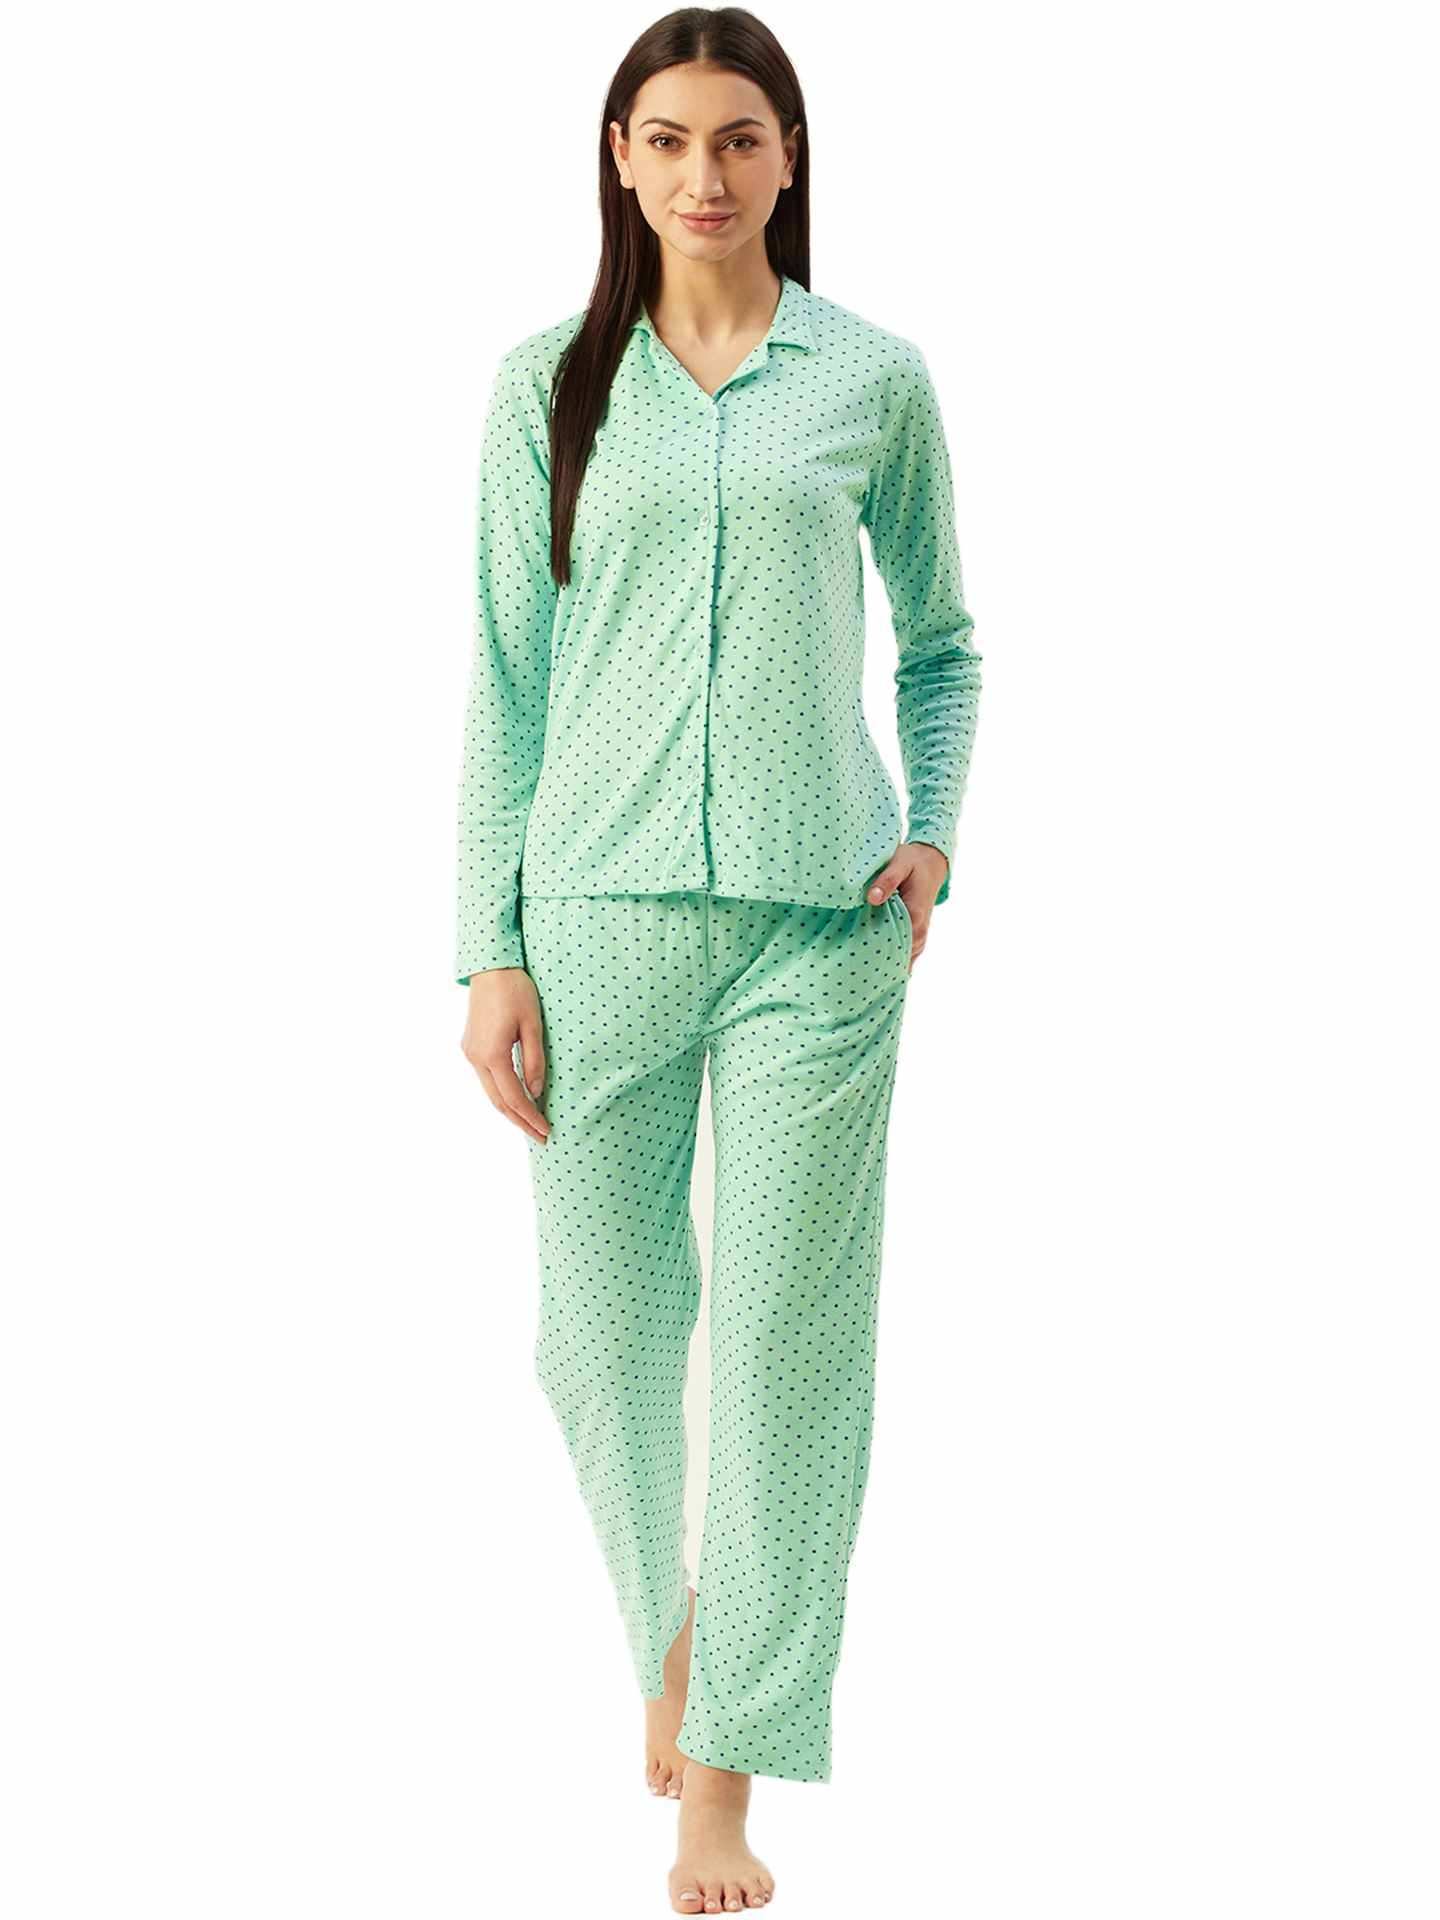 Klamotten Women's Top & Pyjama Nightsuit N72Gs80